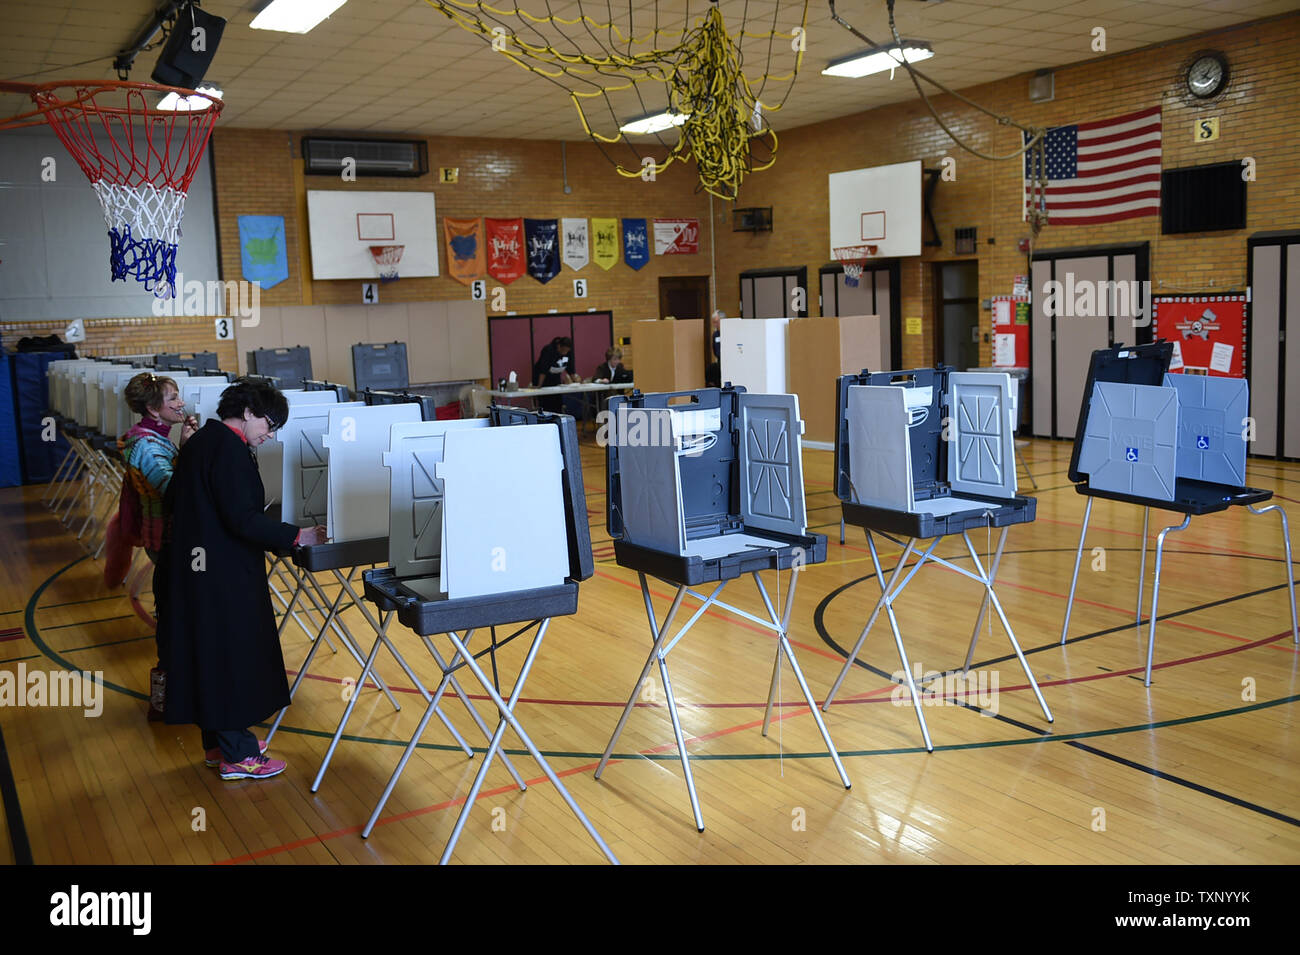 Residents vote in a polling place at Trombly Elementary School in Grosse Pointe, Michigan, March 8, 2016.  Michigan voters headed to the polls to vote in both the Republican and Democratic primaries Tuesday.     Photo by Molly Riley/UPI - Stock Image